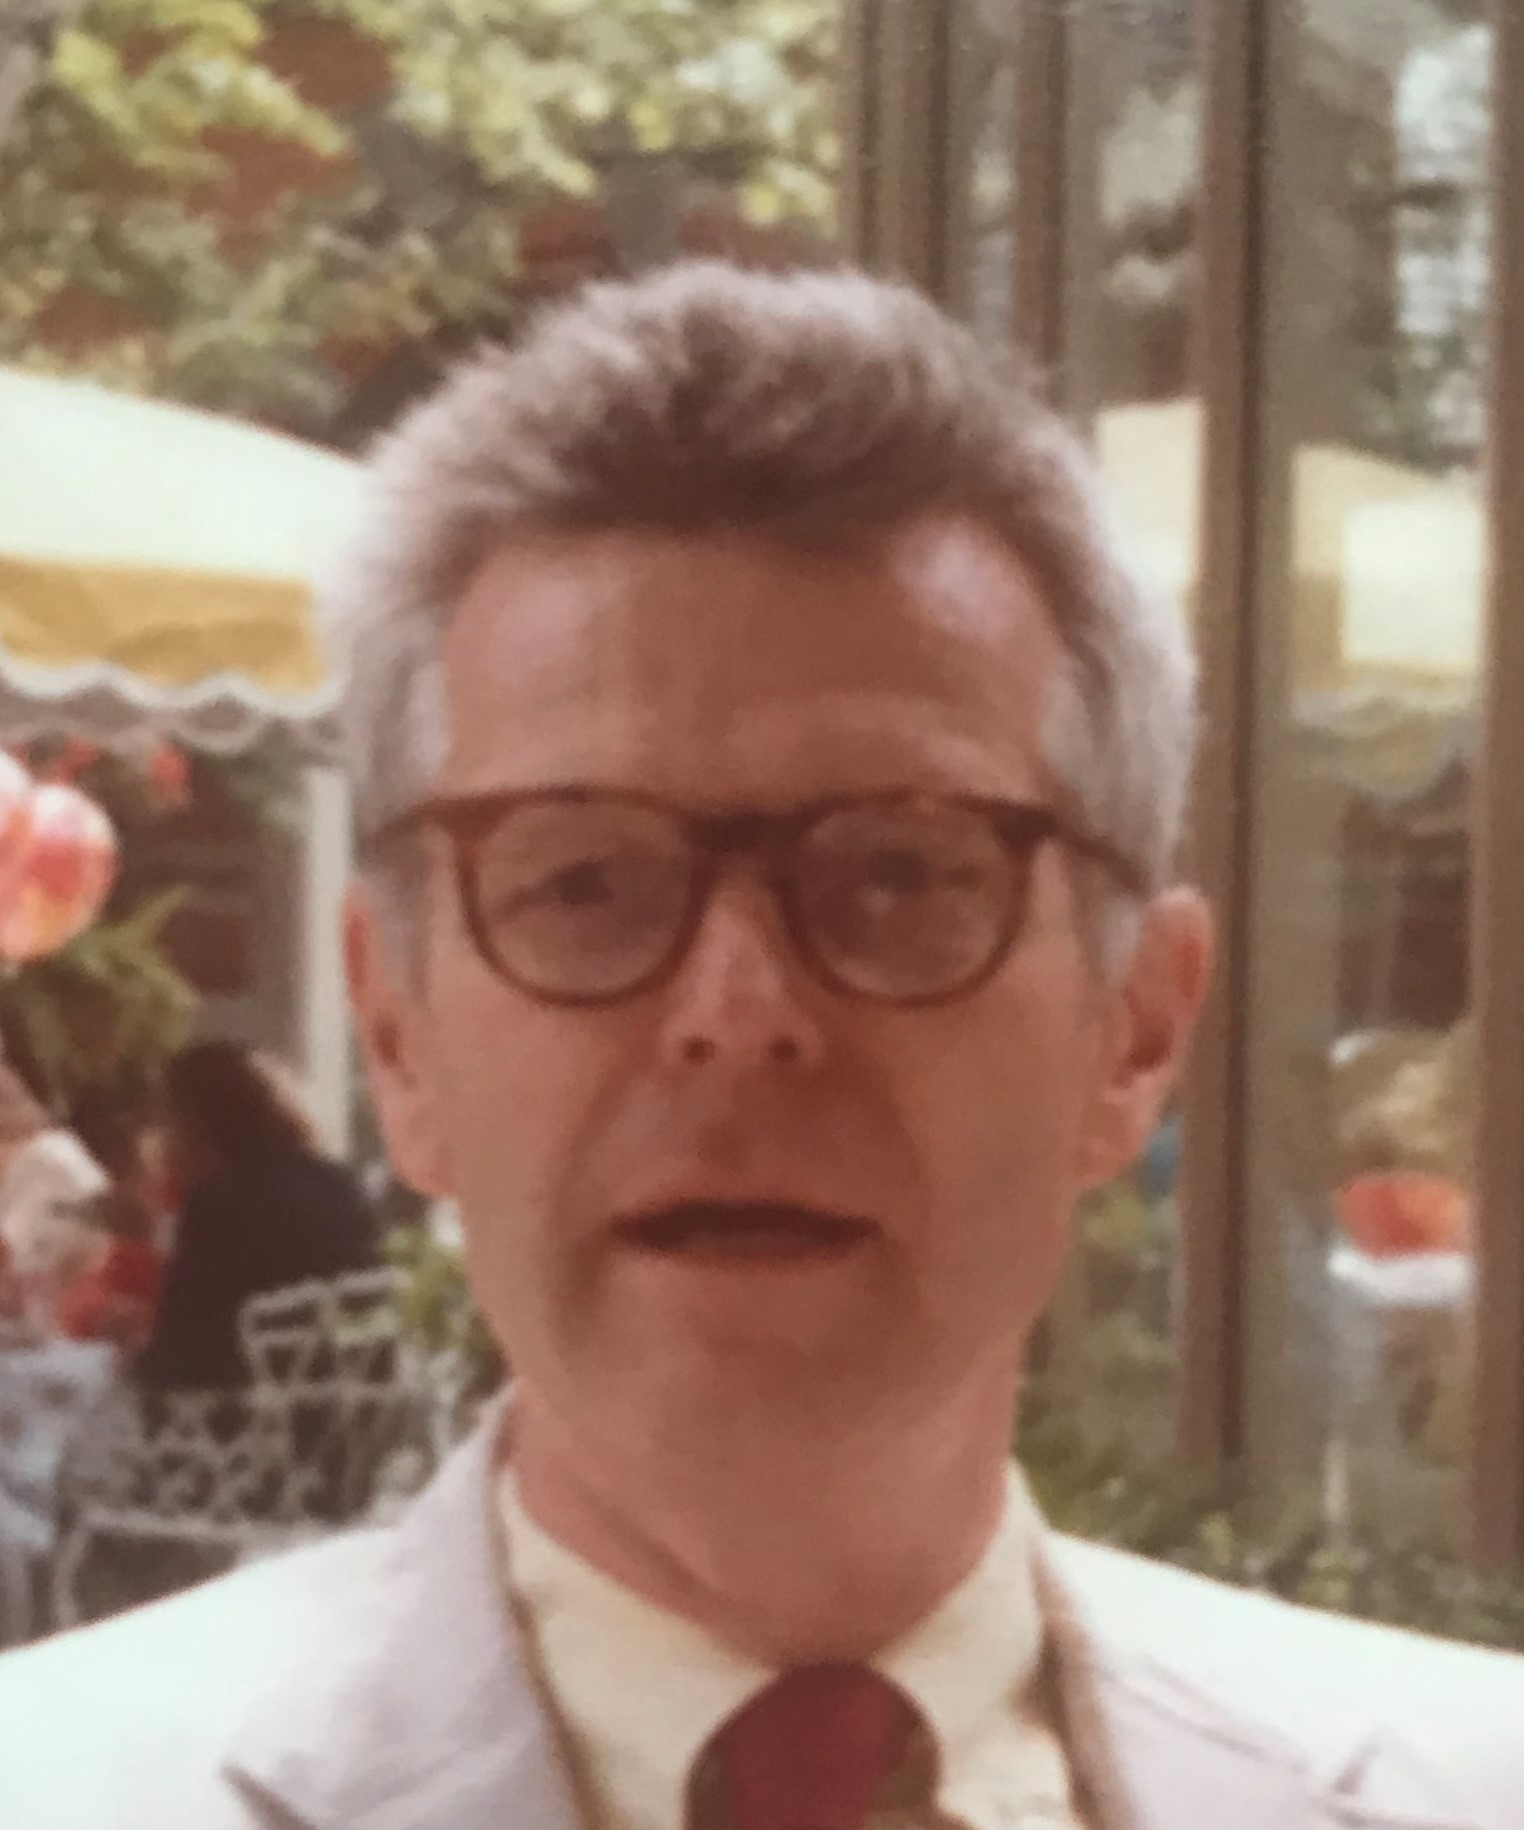 HAMILTON, Richard H., M.D. - …96, passed away on July 6, 2019. He was President of the Society in 1984 and had been a member since 1974. His daughter Elizabeth Hamilton Ferenczi noted that